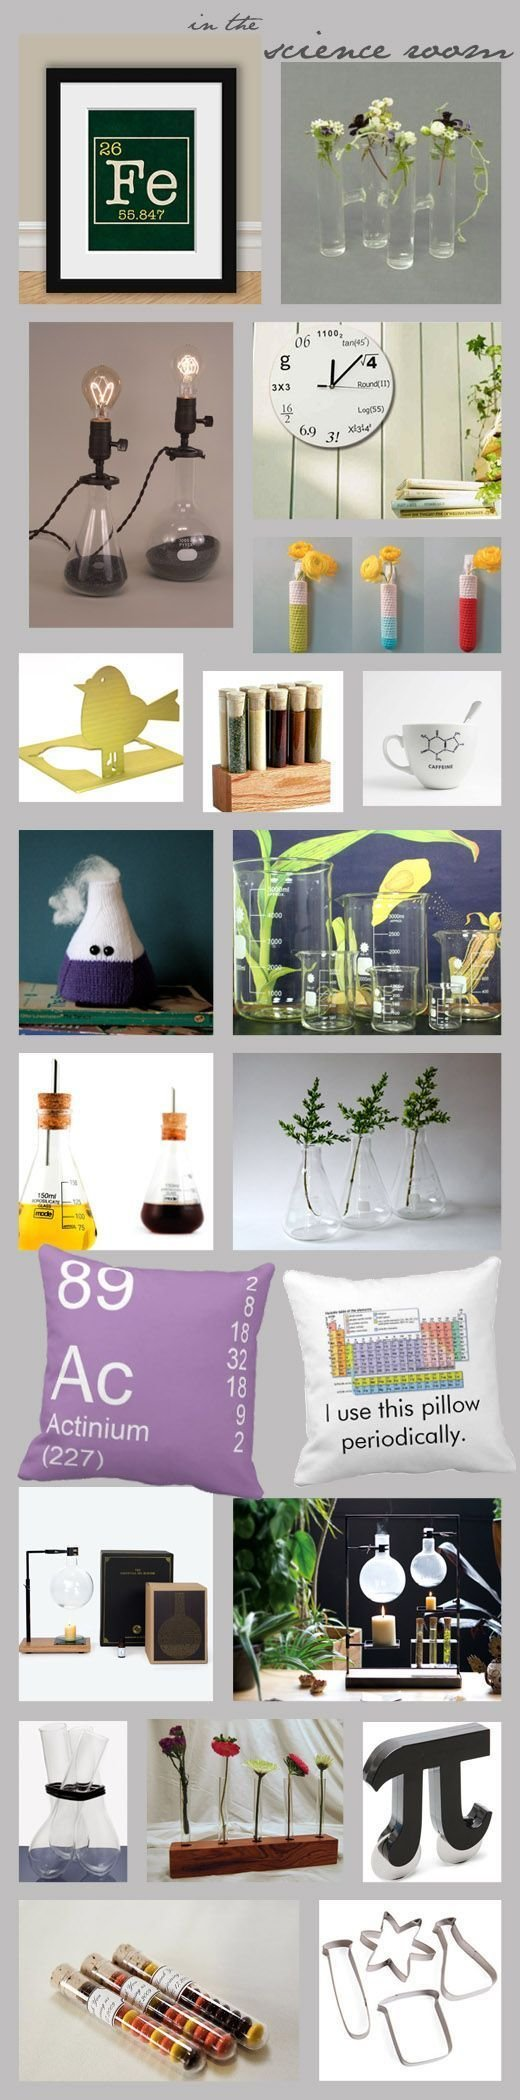 Best 25 Science Room Ideas On Pinterest Science Room With Pictures